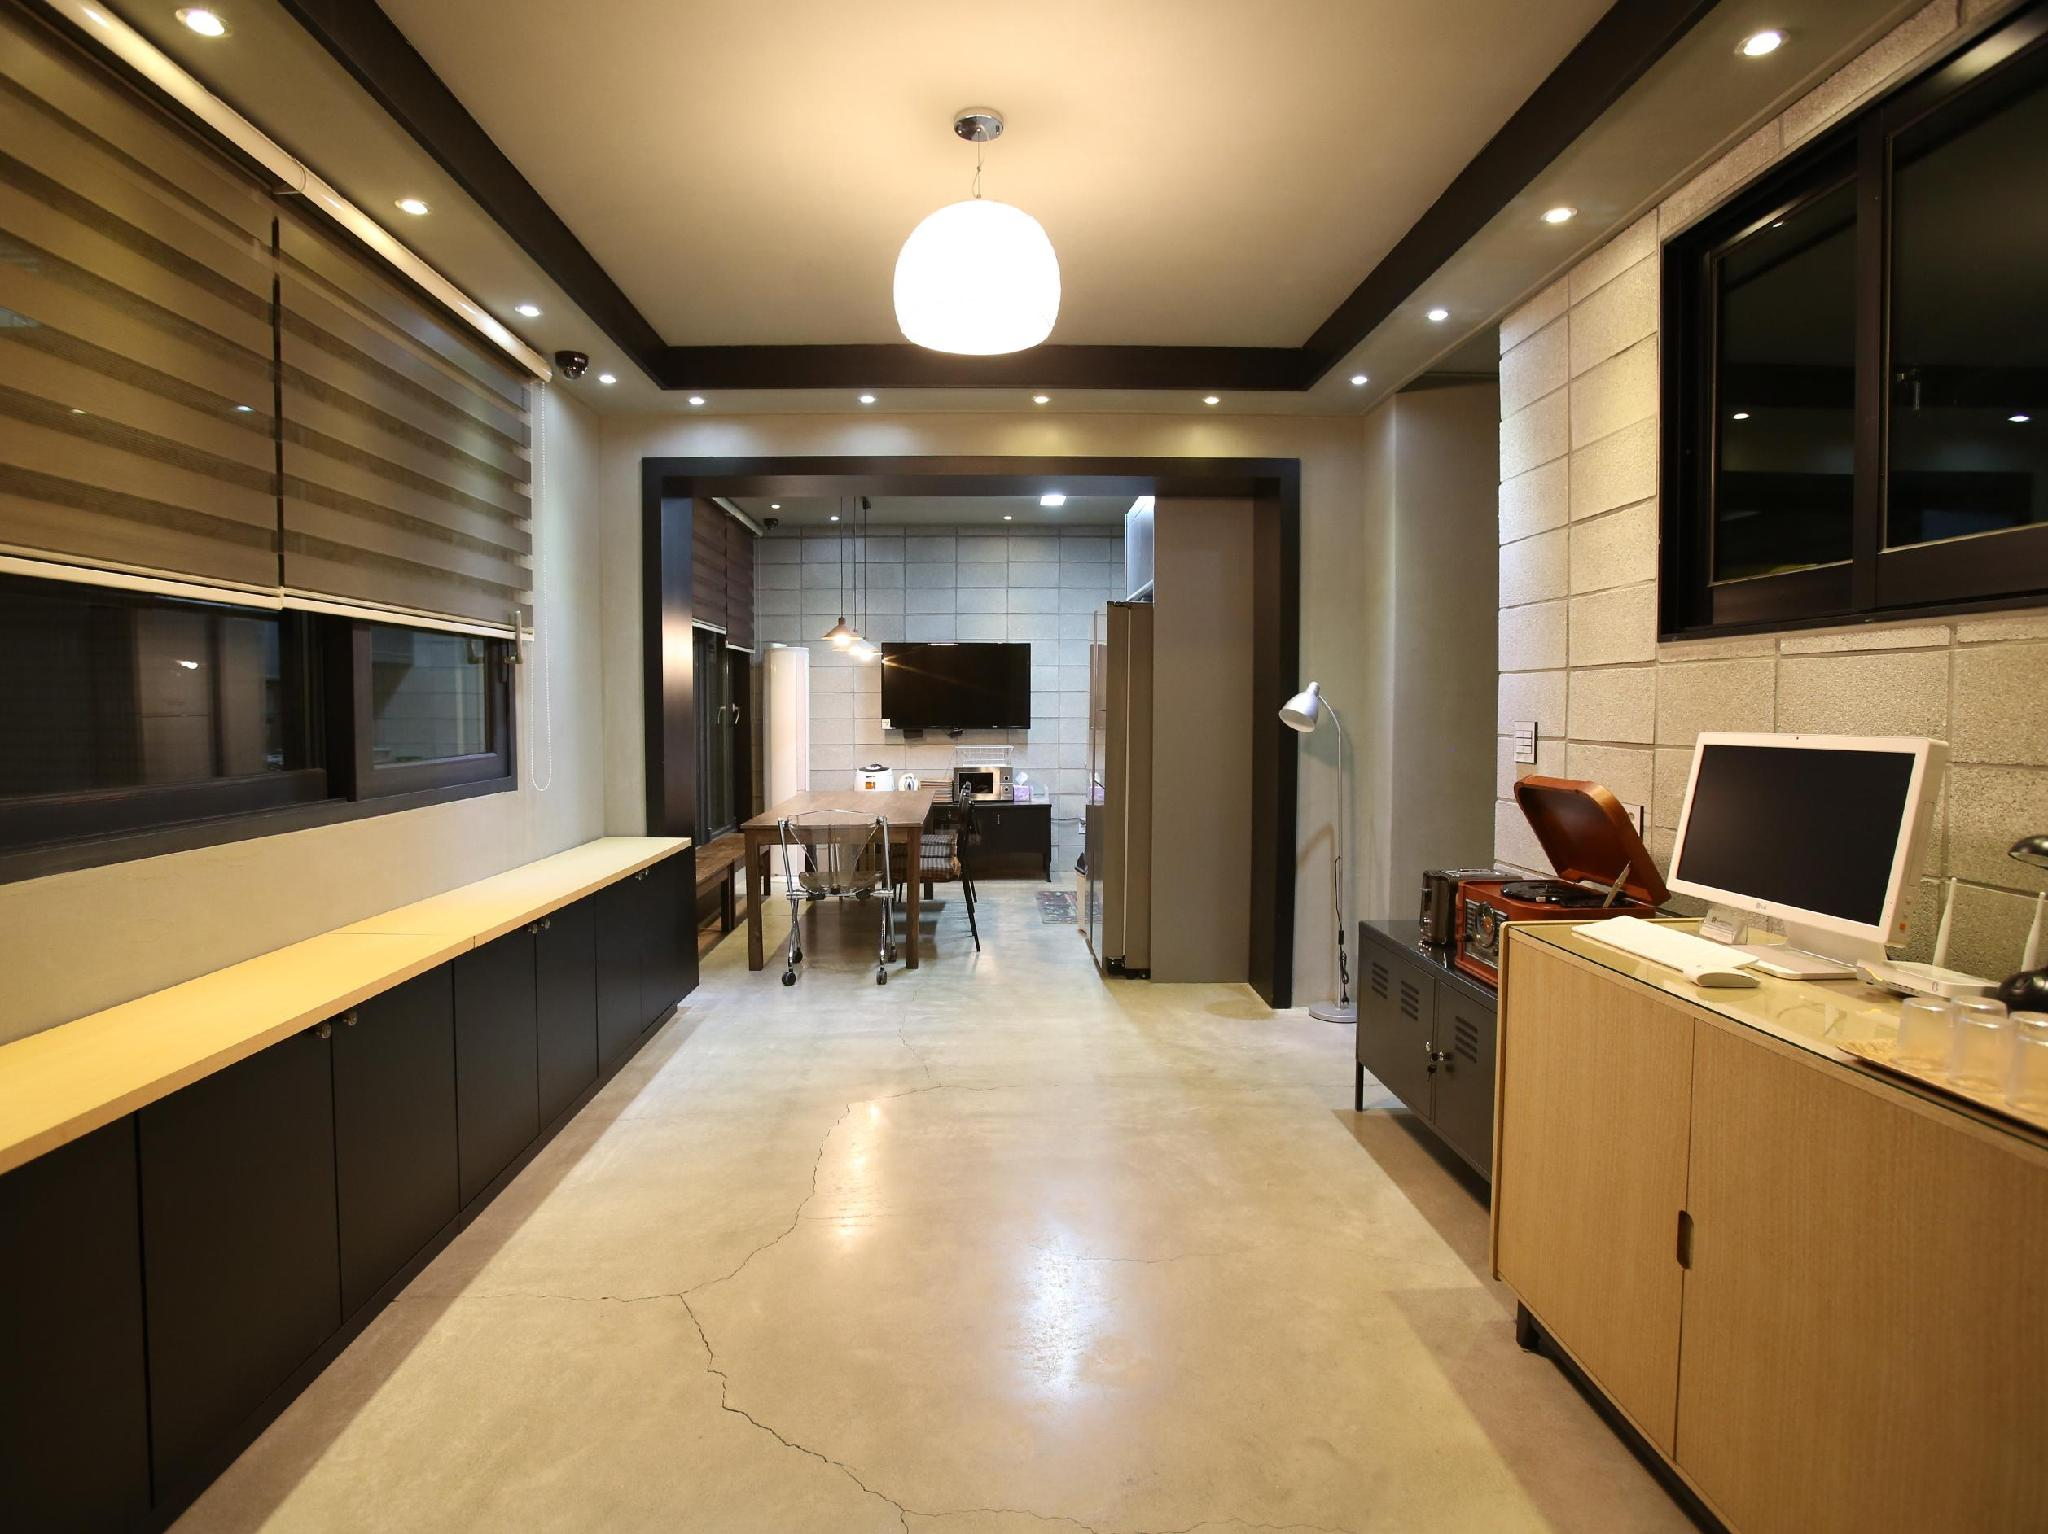 24 Guesthouse Garosu-gil Gangnam - Hotels and Accommodation in South Korea, Asia